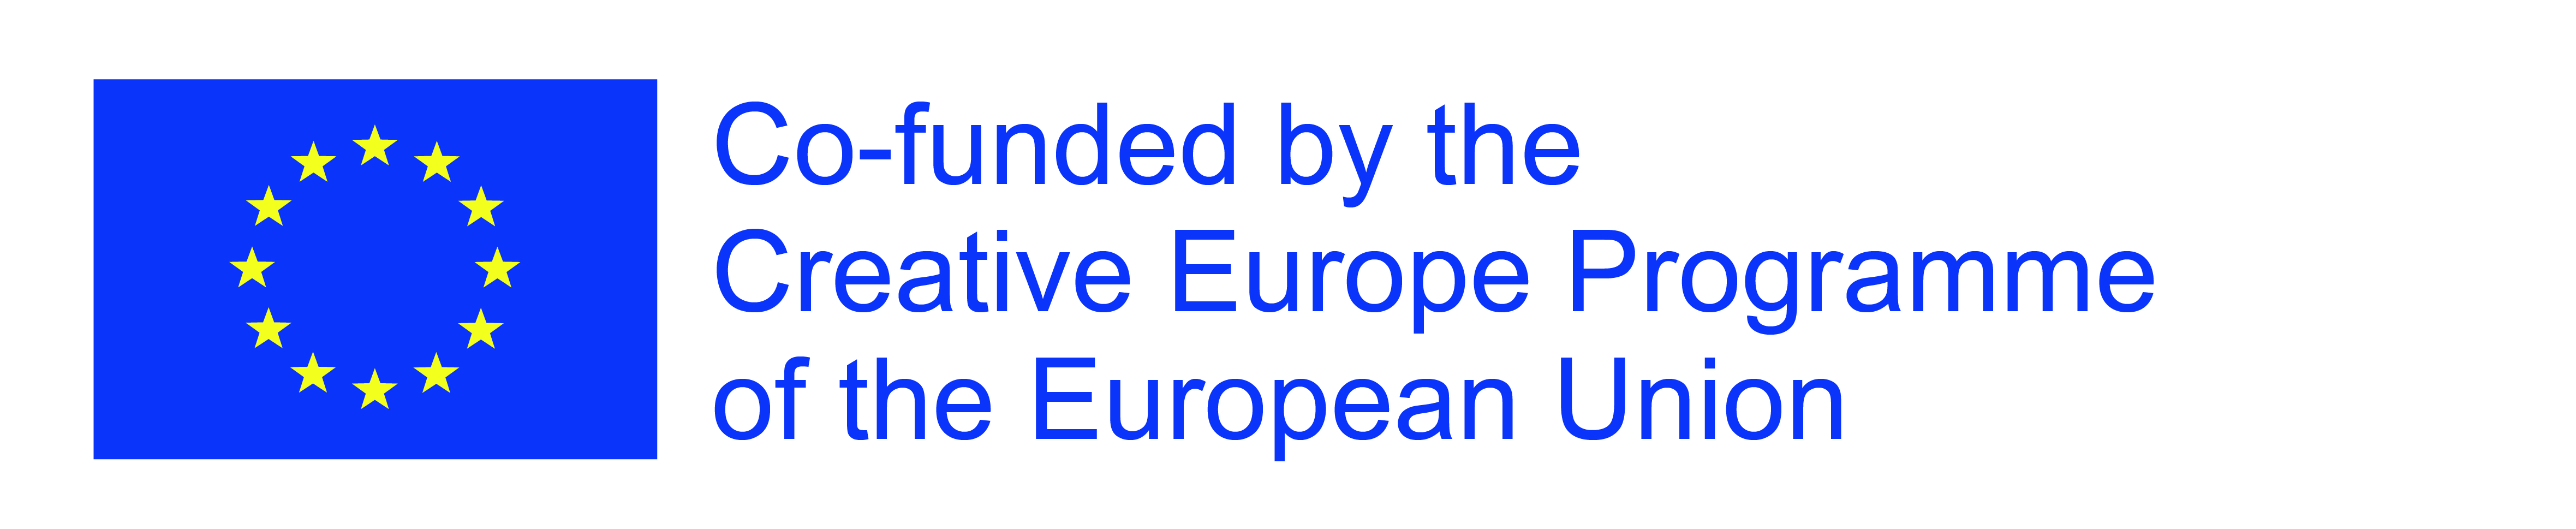 Co-funded by the Creative Europe Programme of the European Union.